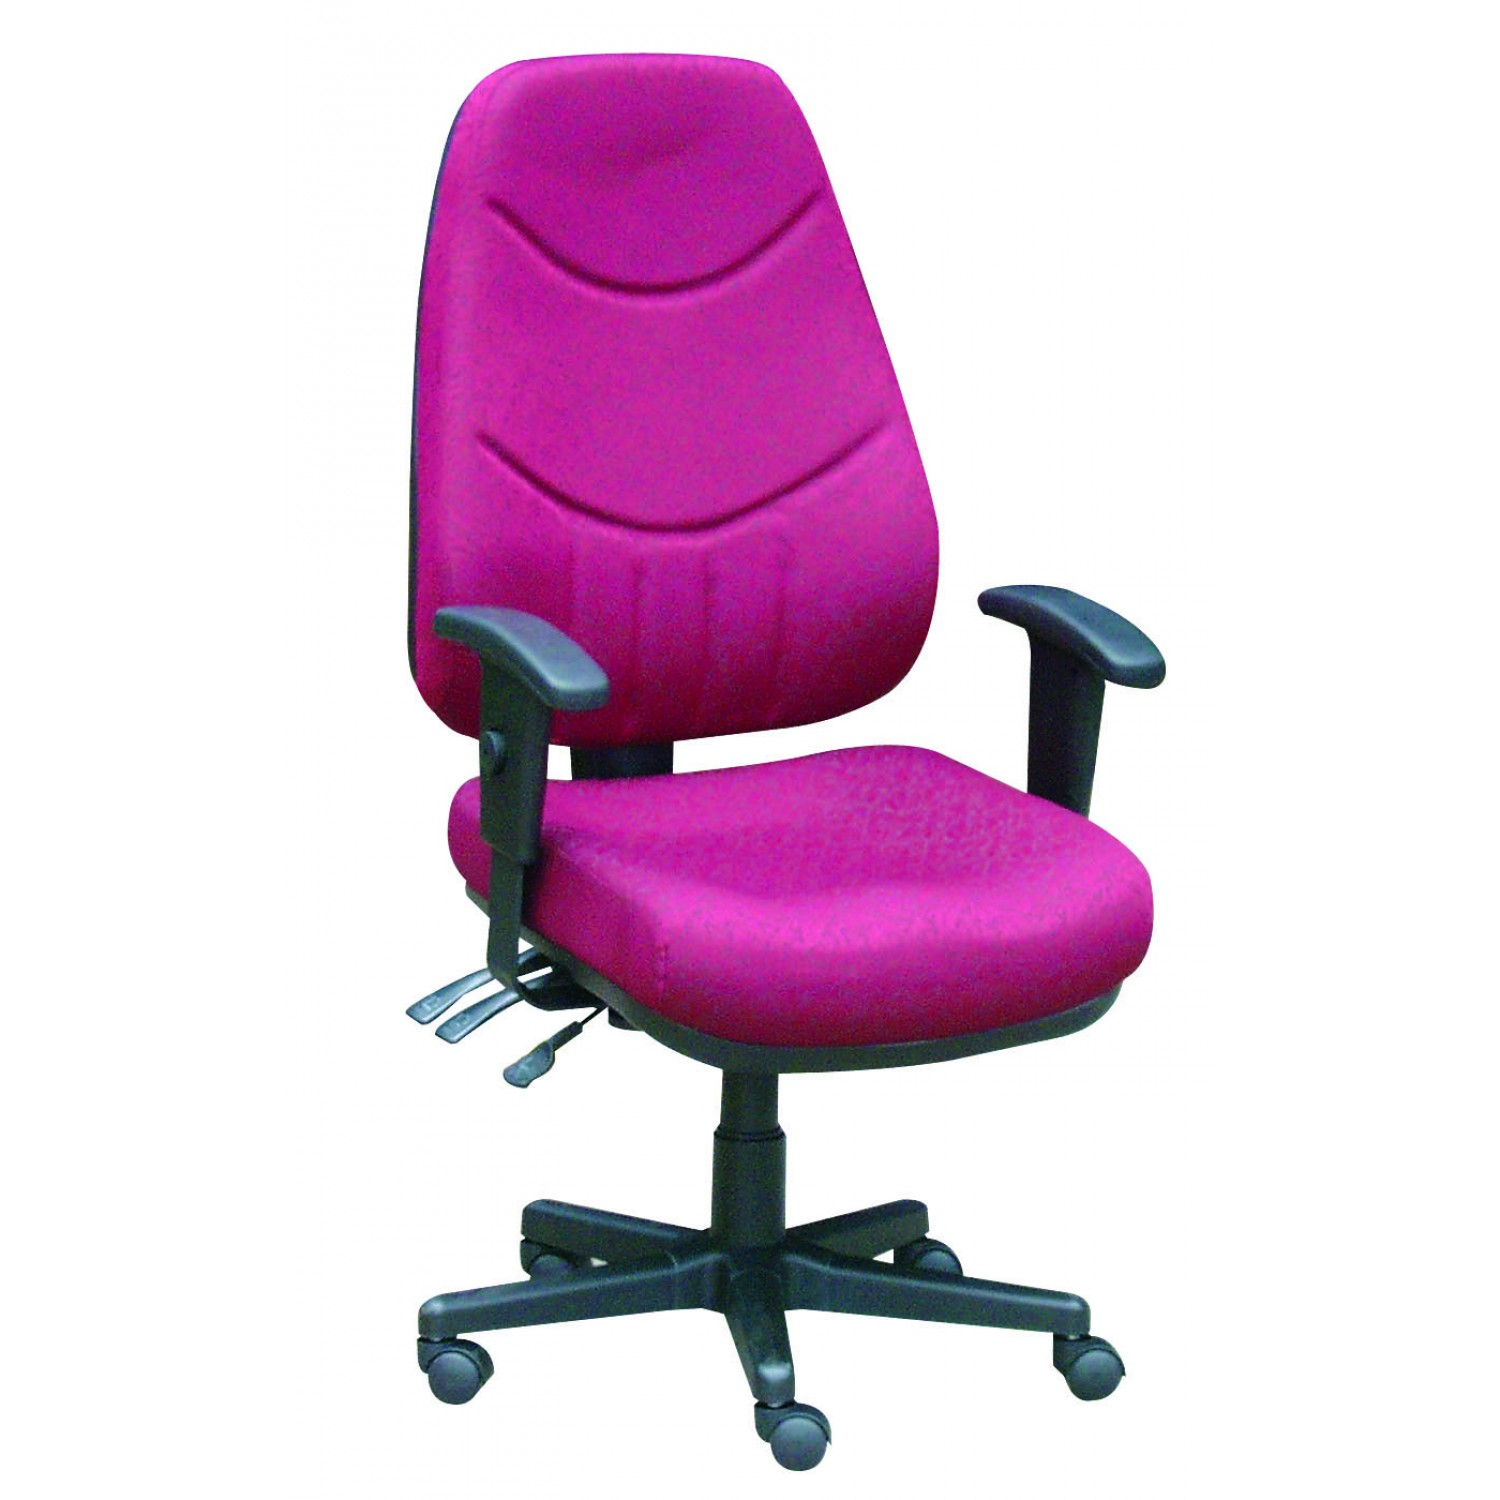 High Back Atlas Manager Chair fice Furniture Since 1990